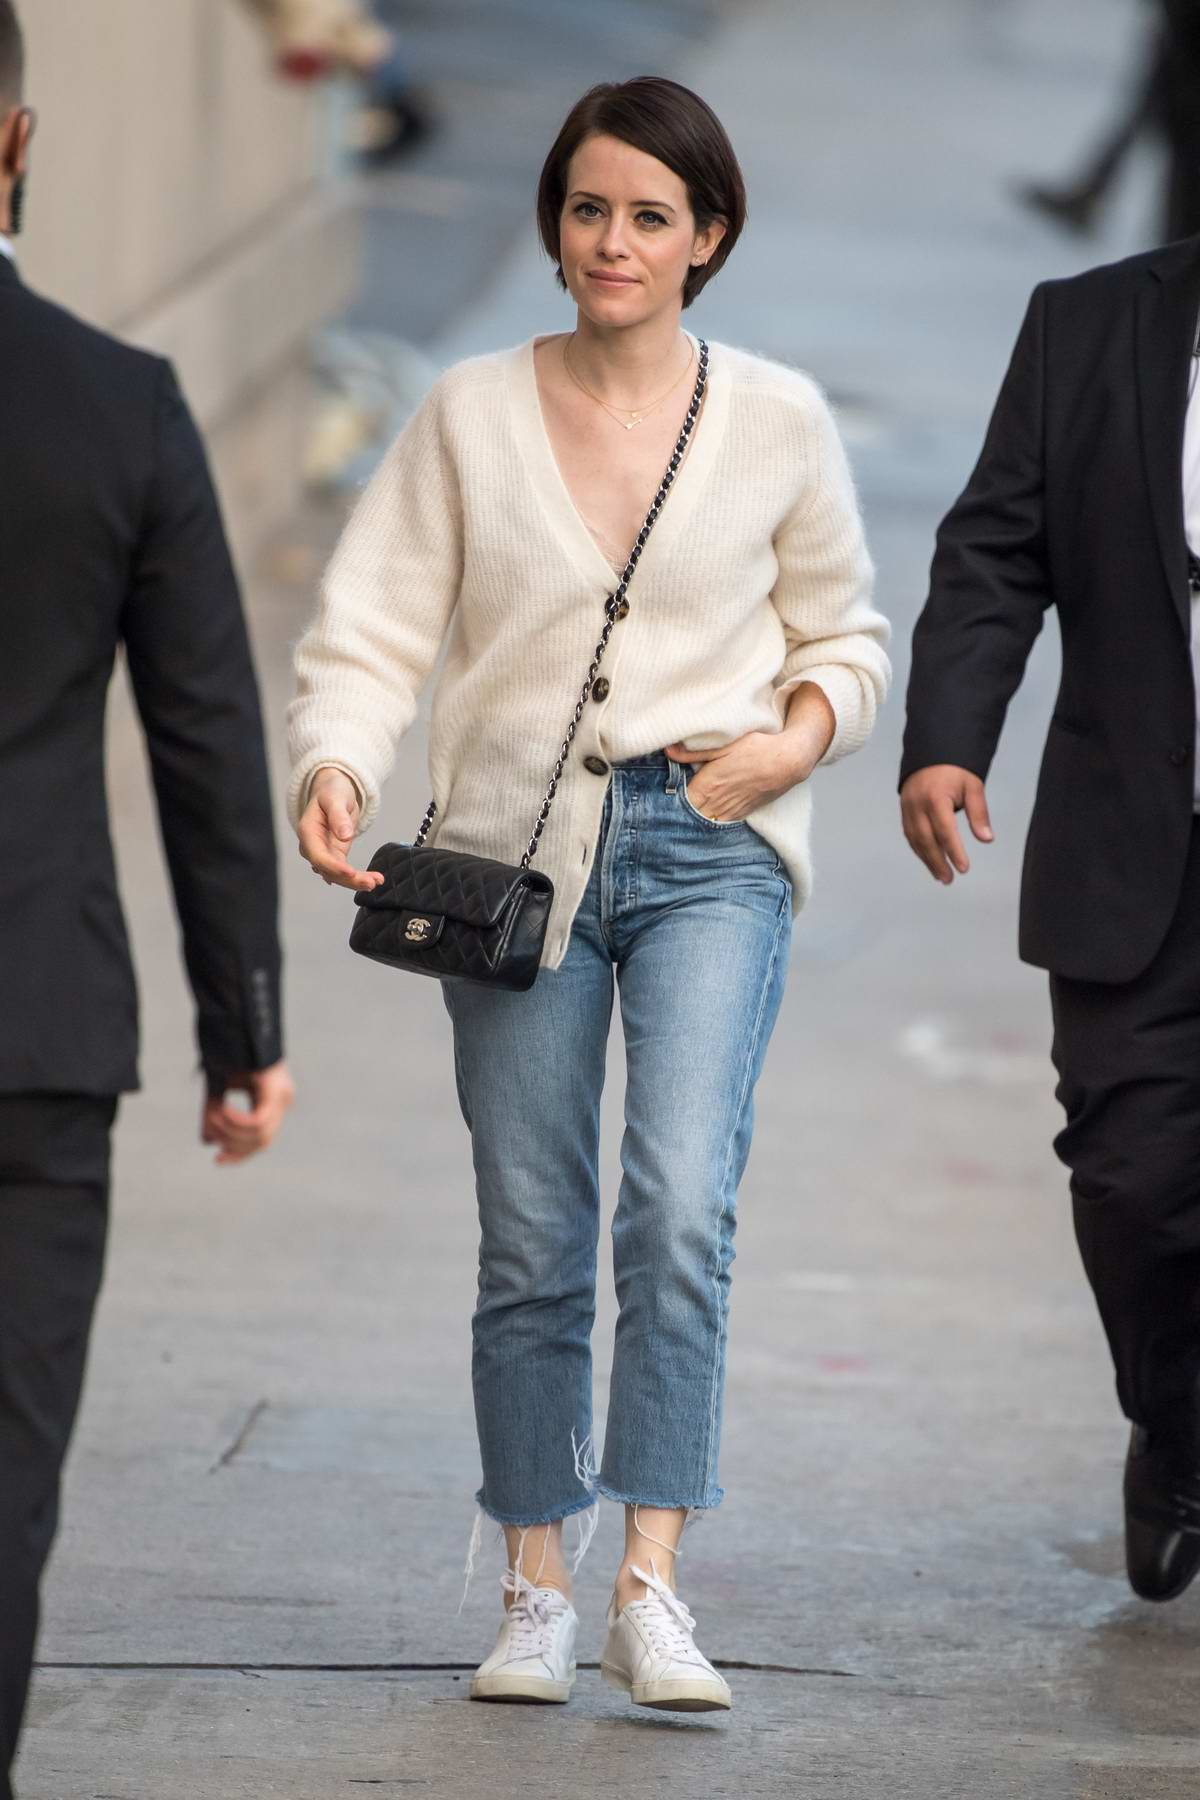 Claire Foy arrives for her appearance on 'Jimmy Kimmel Live' in Los Angeles